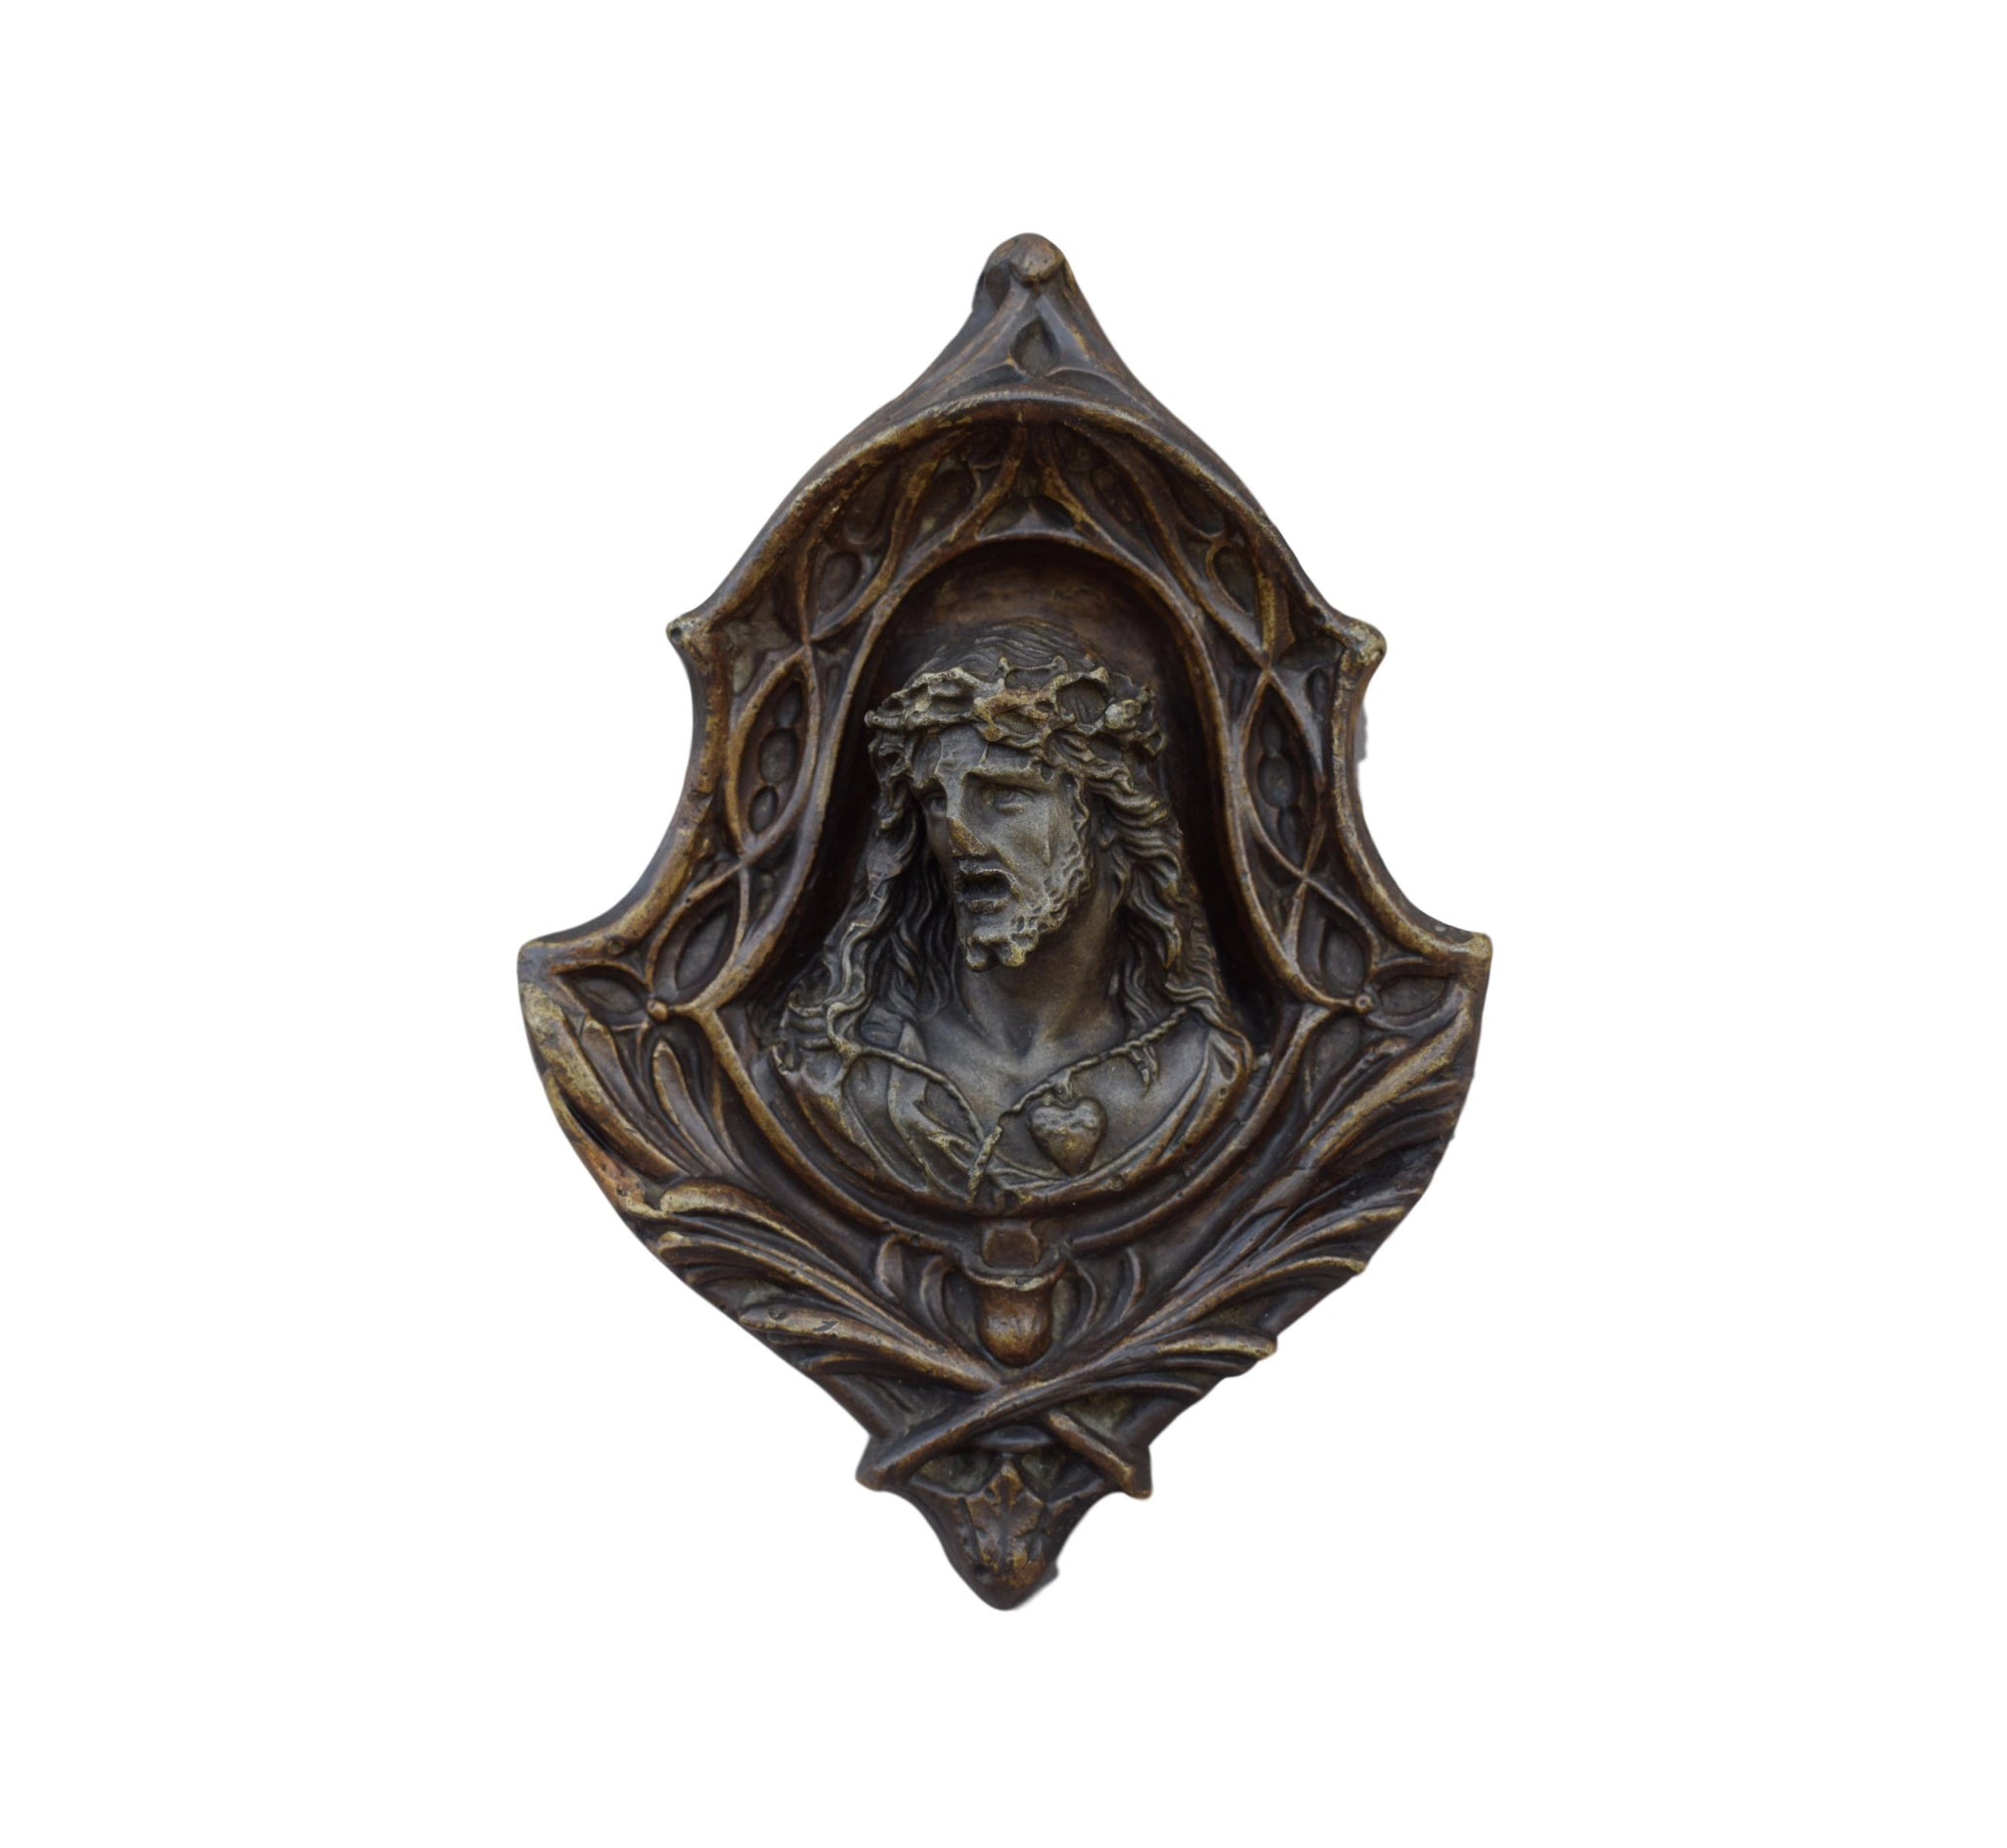 French Antique Religious Jesus Christ Wall Medallion - 19th.C Jesus Sacred Heart Wall Reliquary - Gothic Handmade Catholic Frame